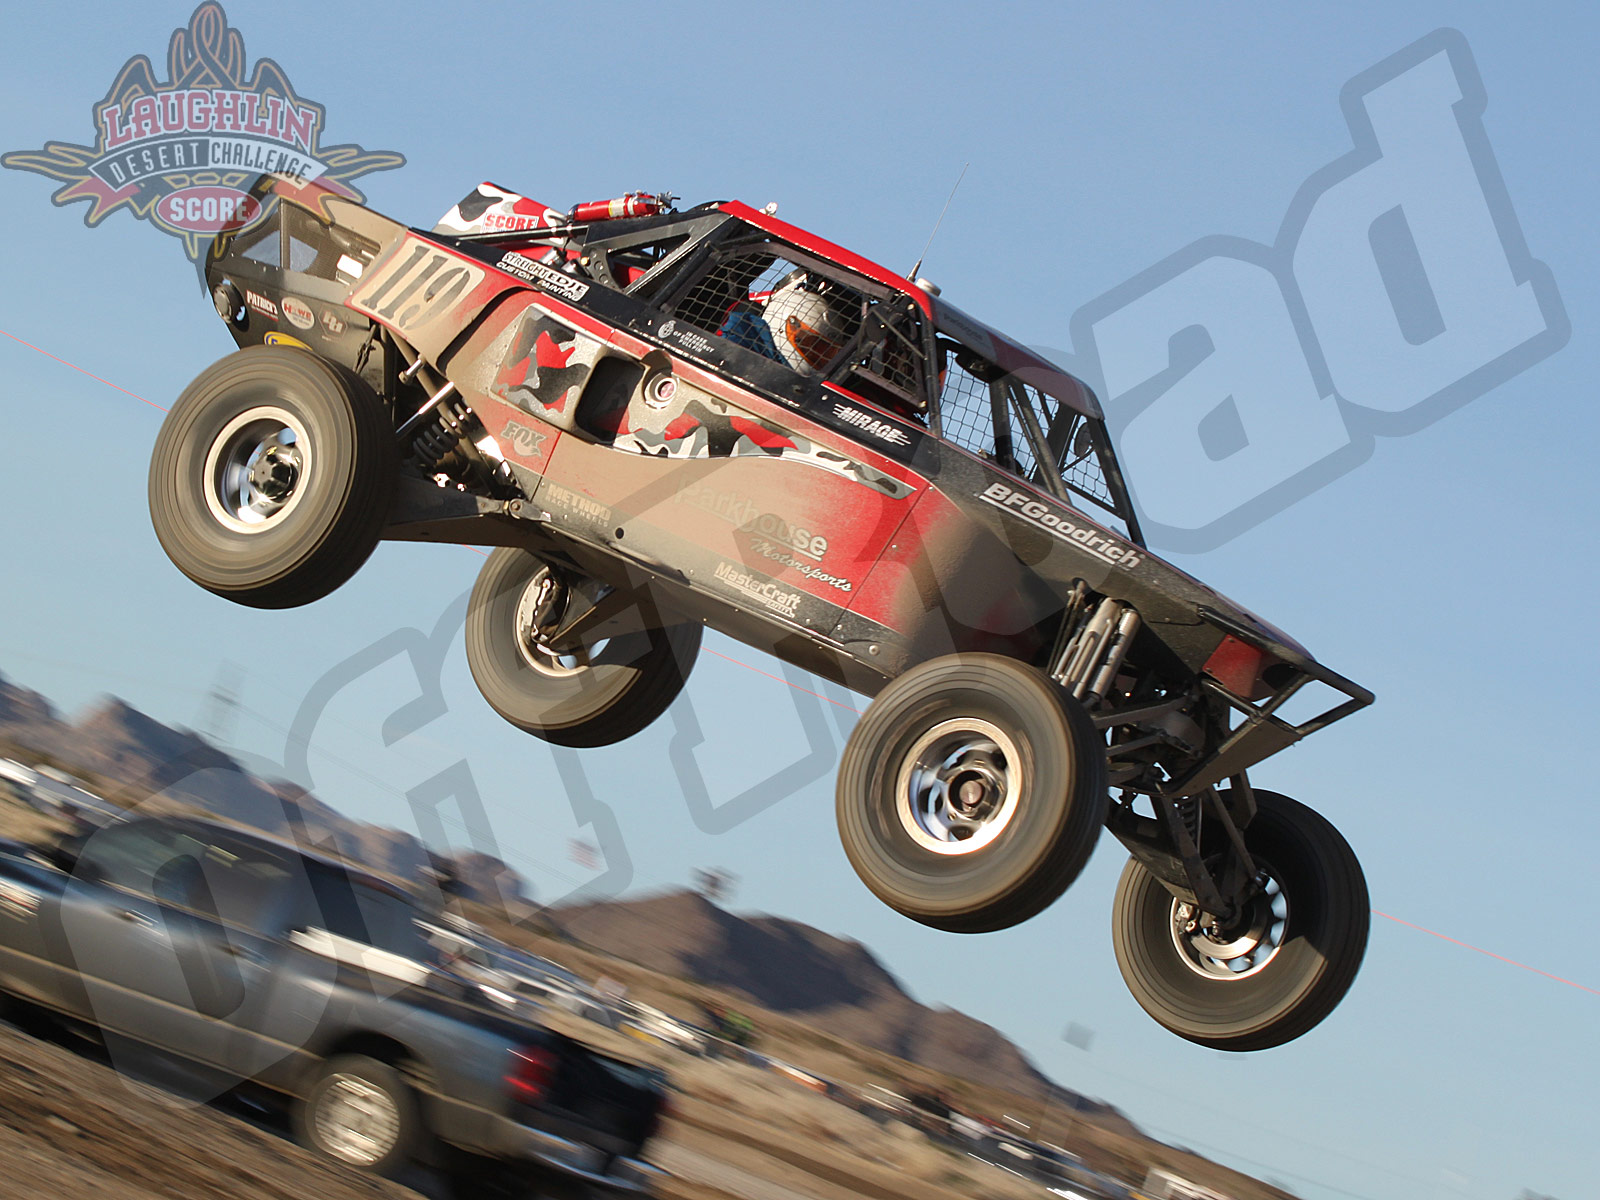 030811or 6455+2011 score laughlin desert challenge+class 1 saturday